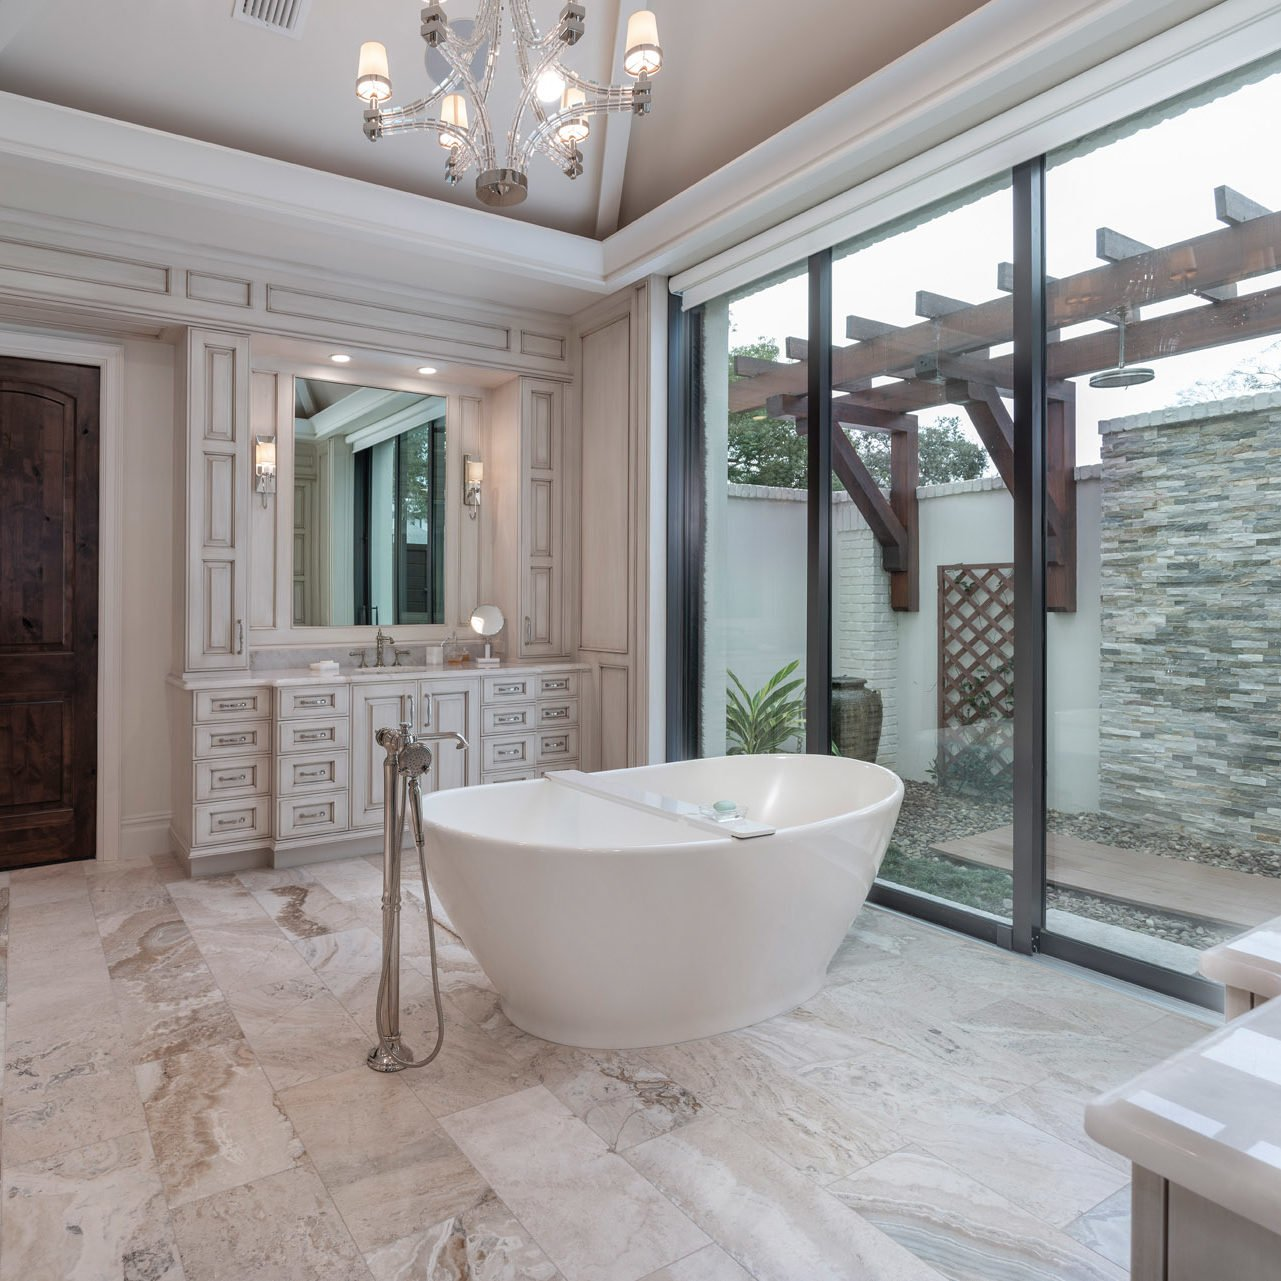 elegant bathroom design built by The Einheit Company